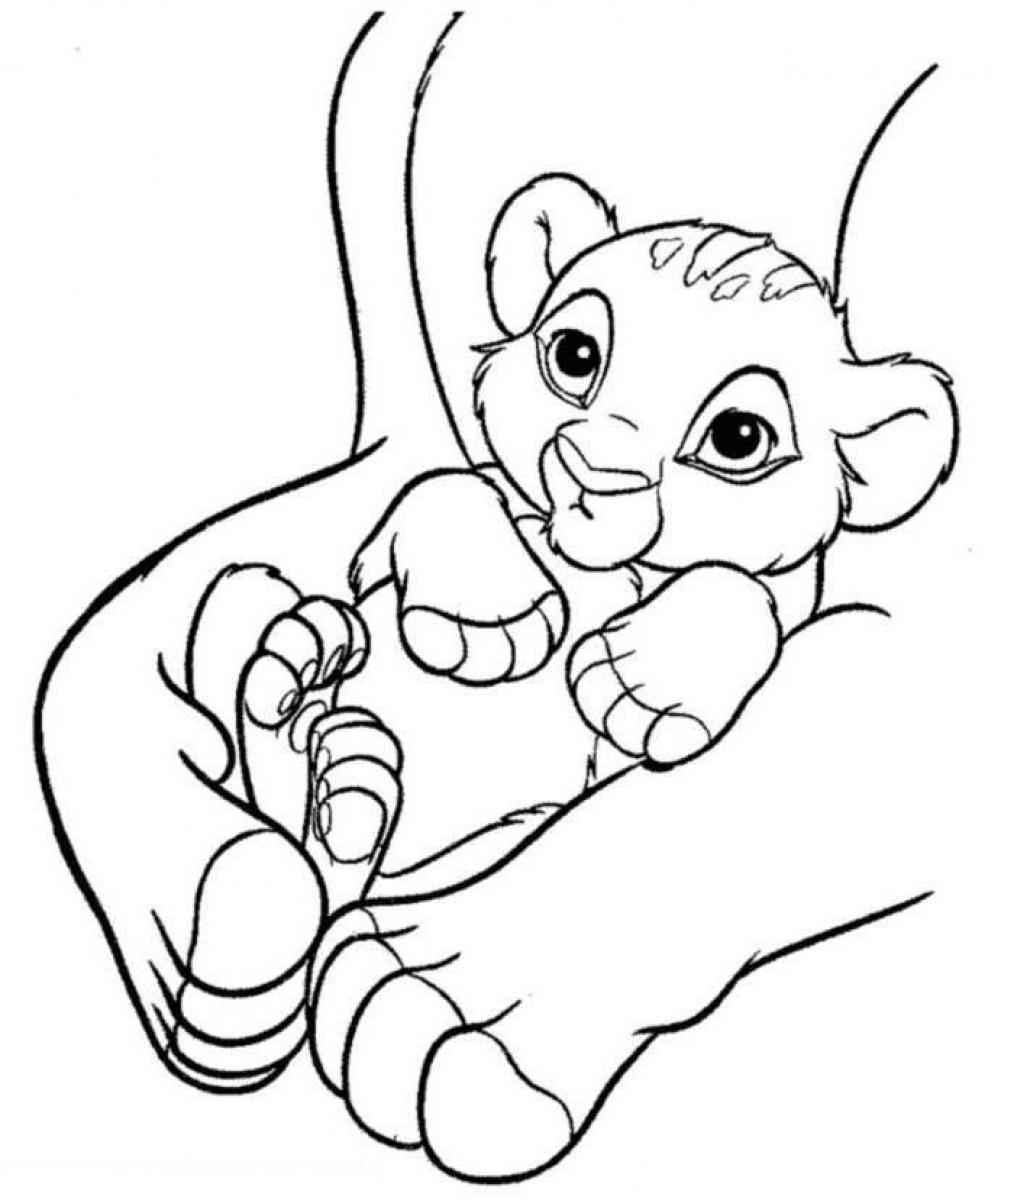 simba printable coloring pages kids coloring pages free download kids online world blog simba coloring printable pages